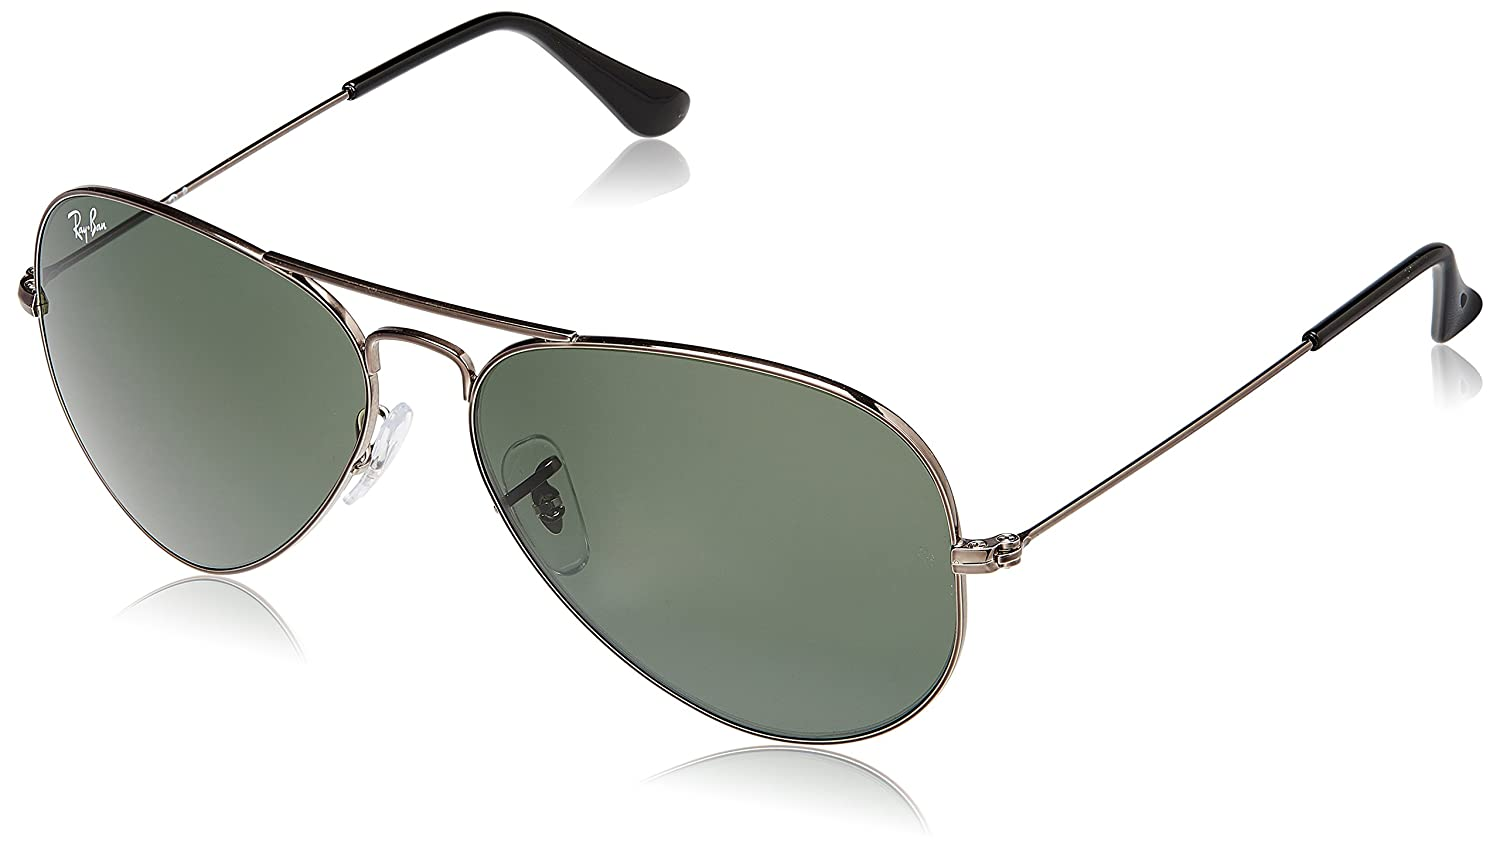 5055fcf08c879 Ray-Ban Aviator Sunglasses (Natural Green) (RB3025 004 58 14)  Amazon.in   Clothing   Accessories